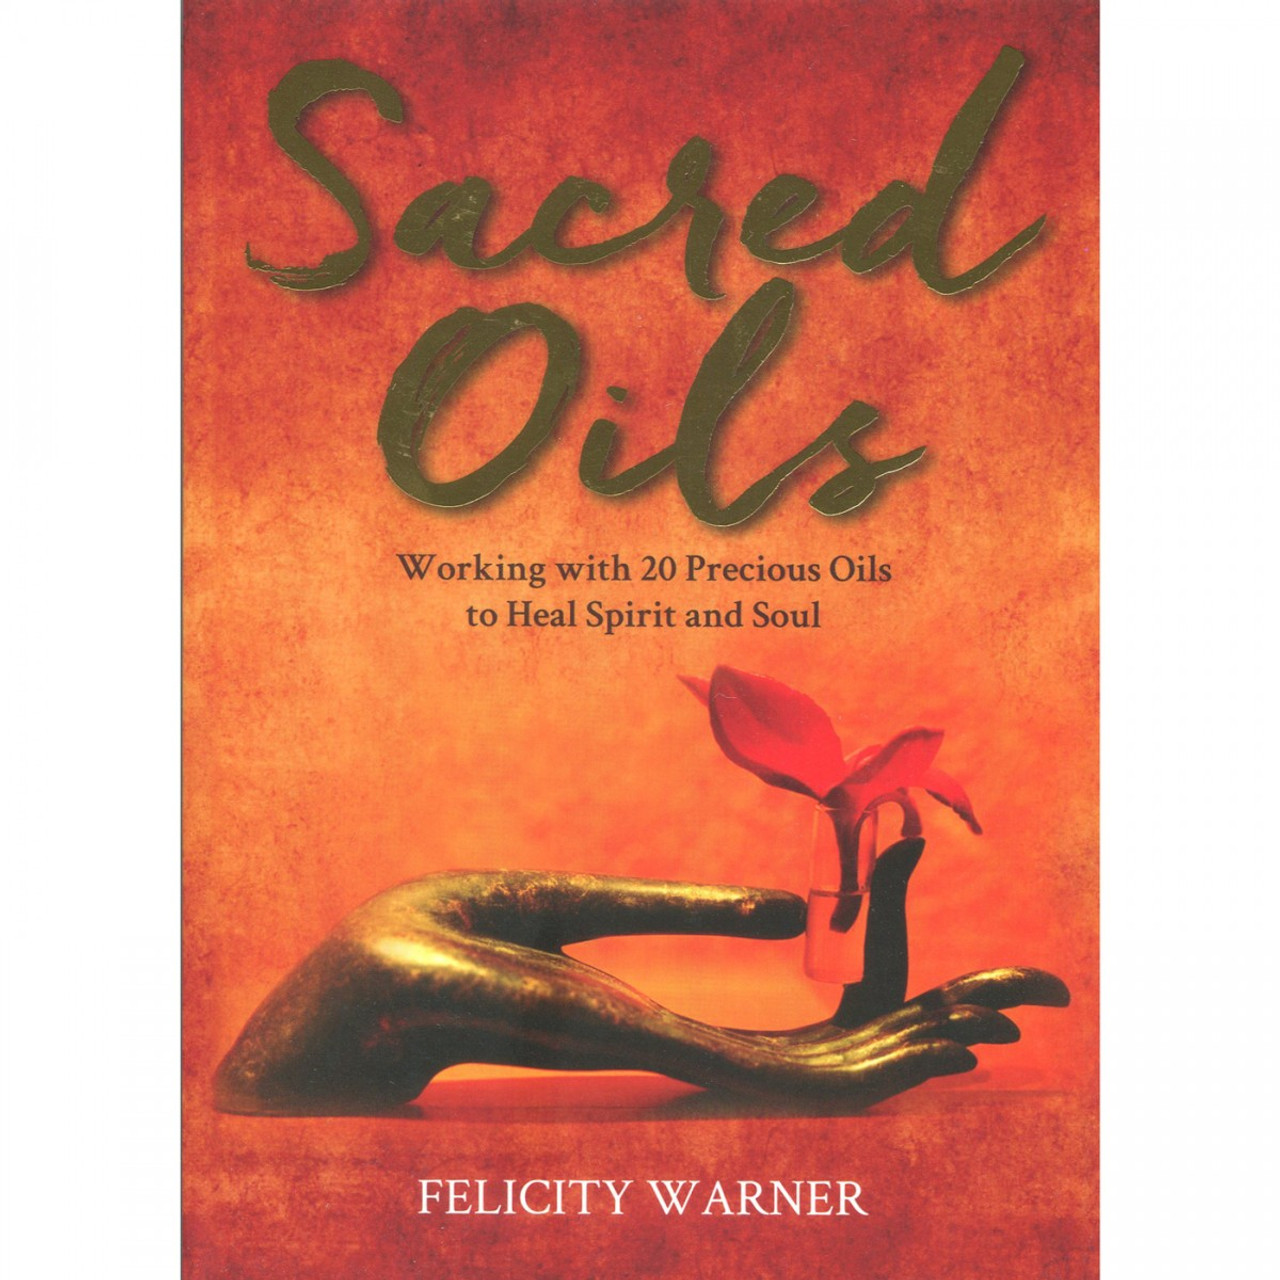 Sacred Oils by Felicity Warner